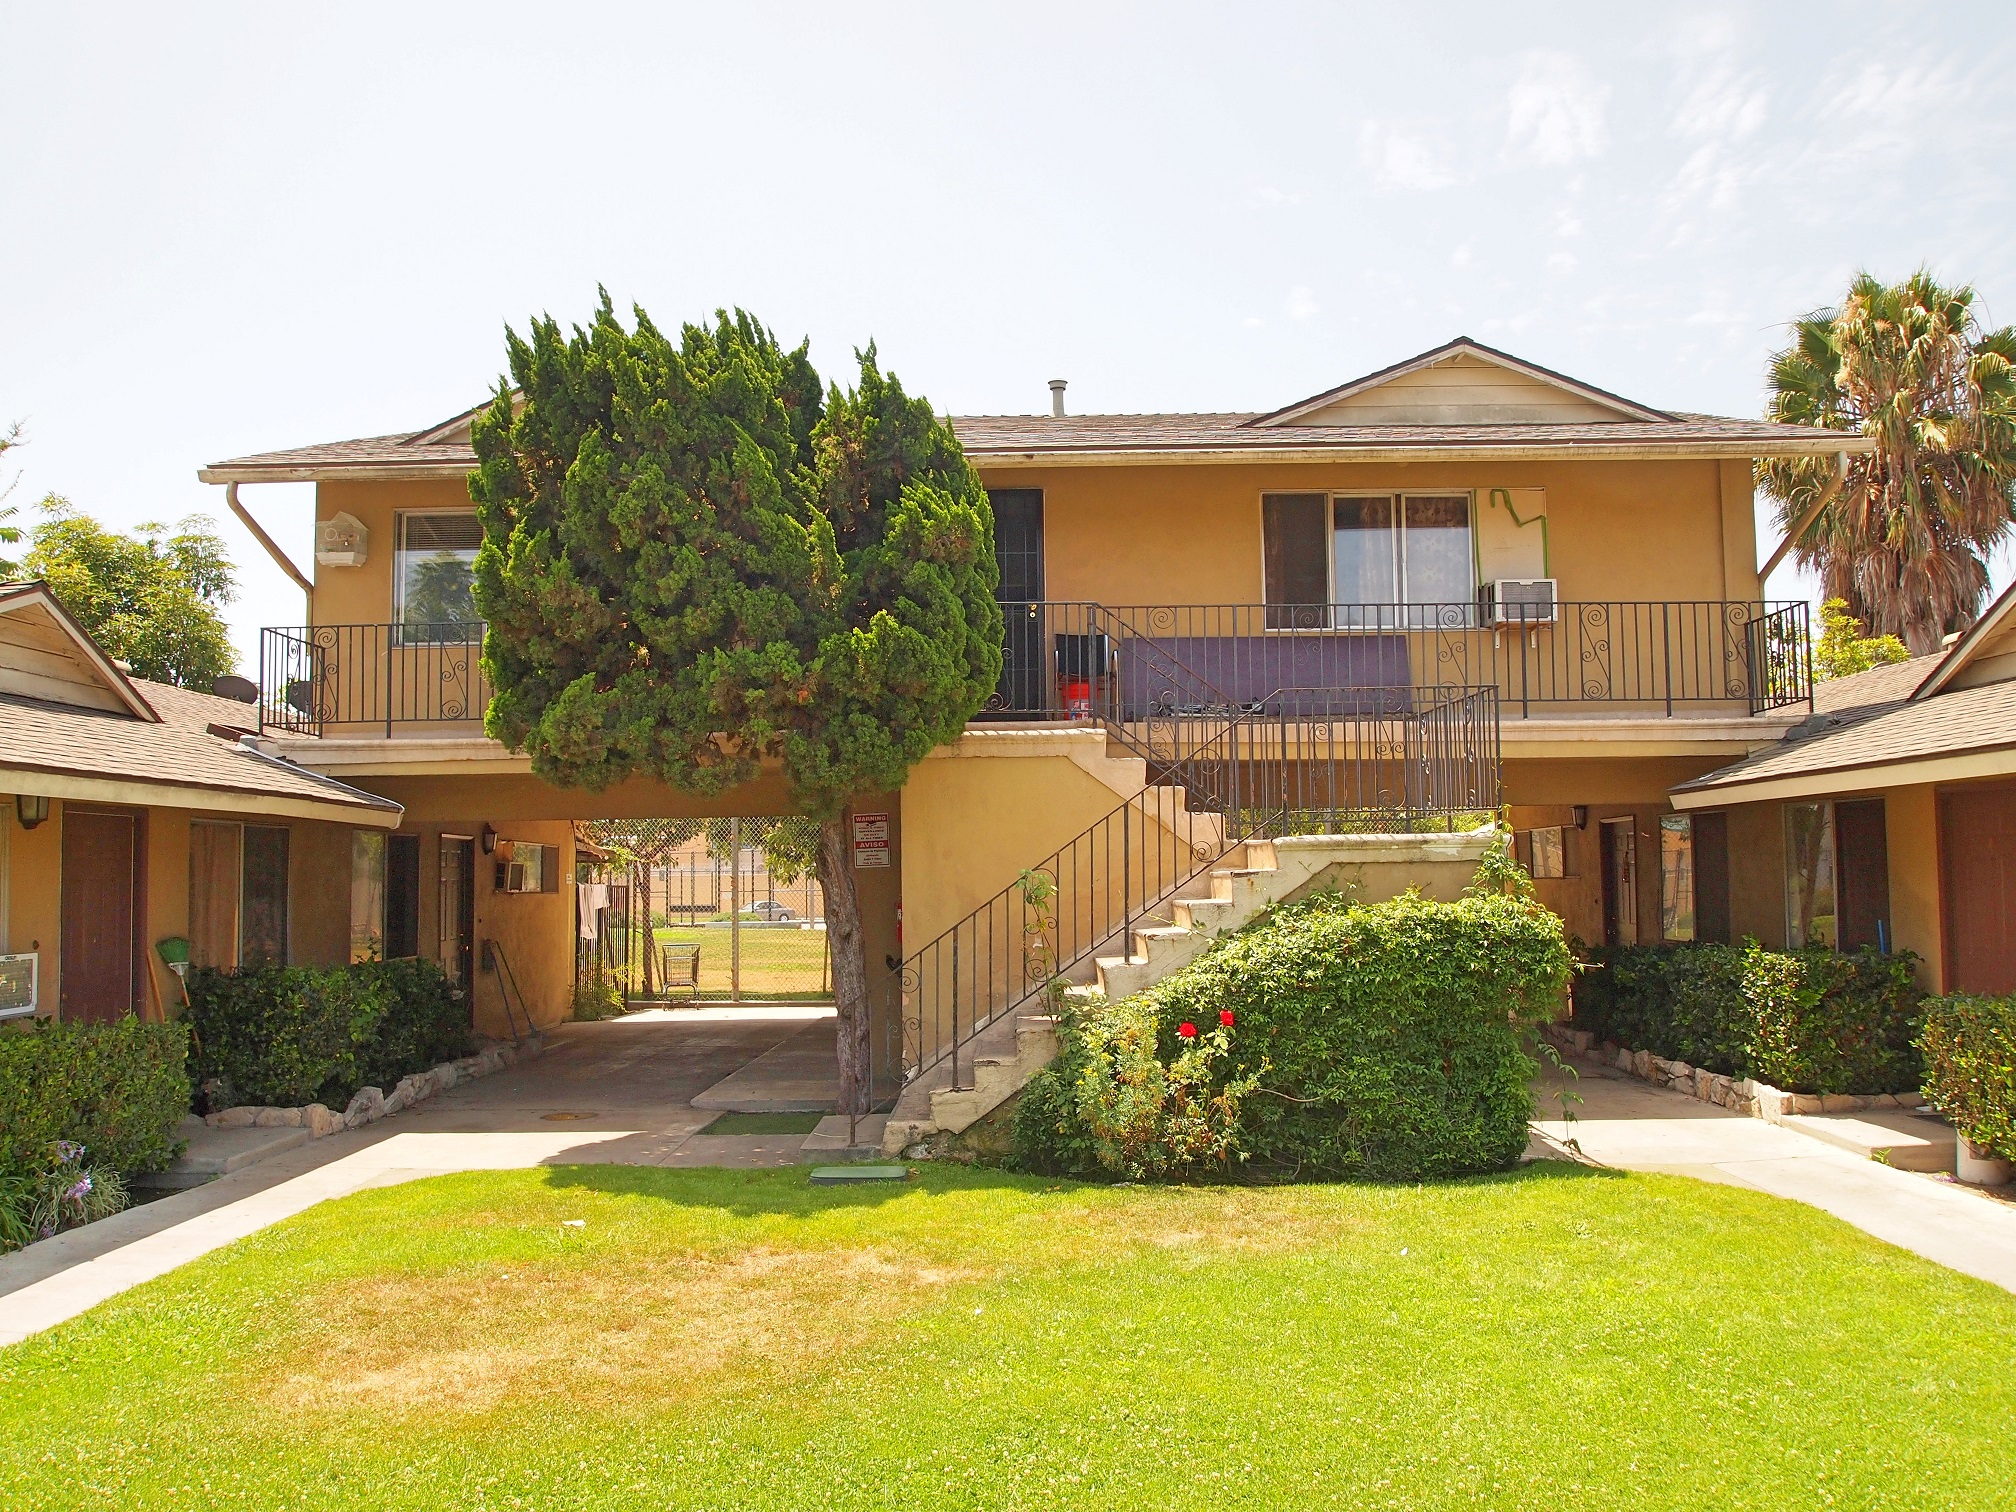 11 Unit Multifamily Investment Real Estate